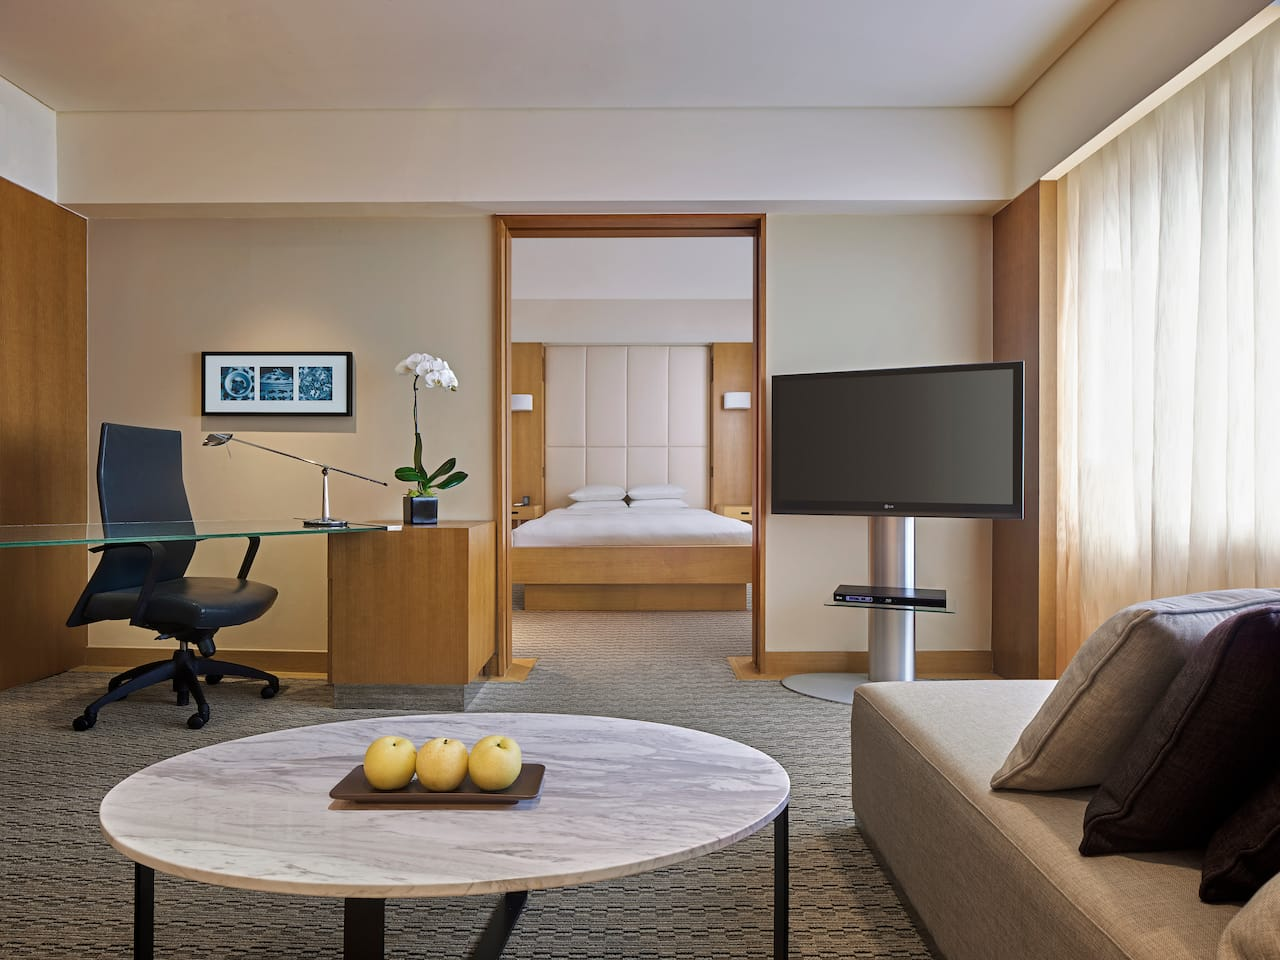 Club Deluxe Room, 1 king bed and exclusive club access, Grand Hyatt Singapore